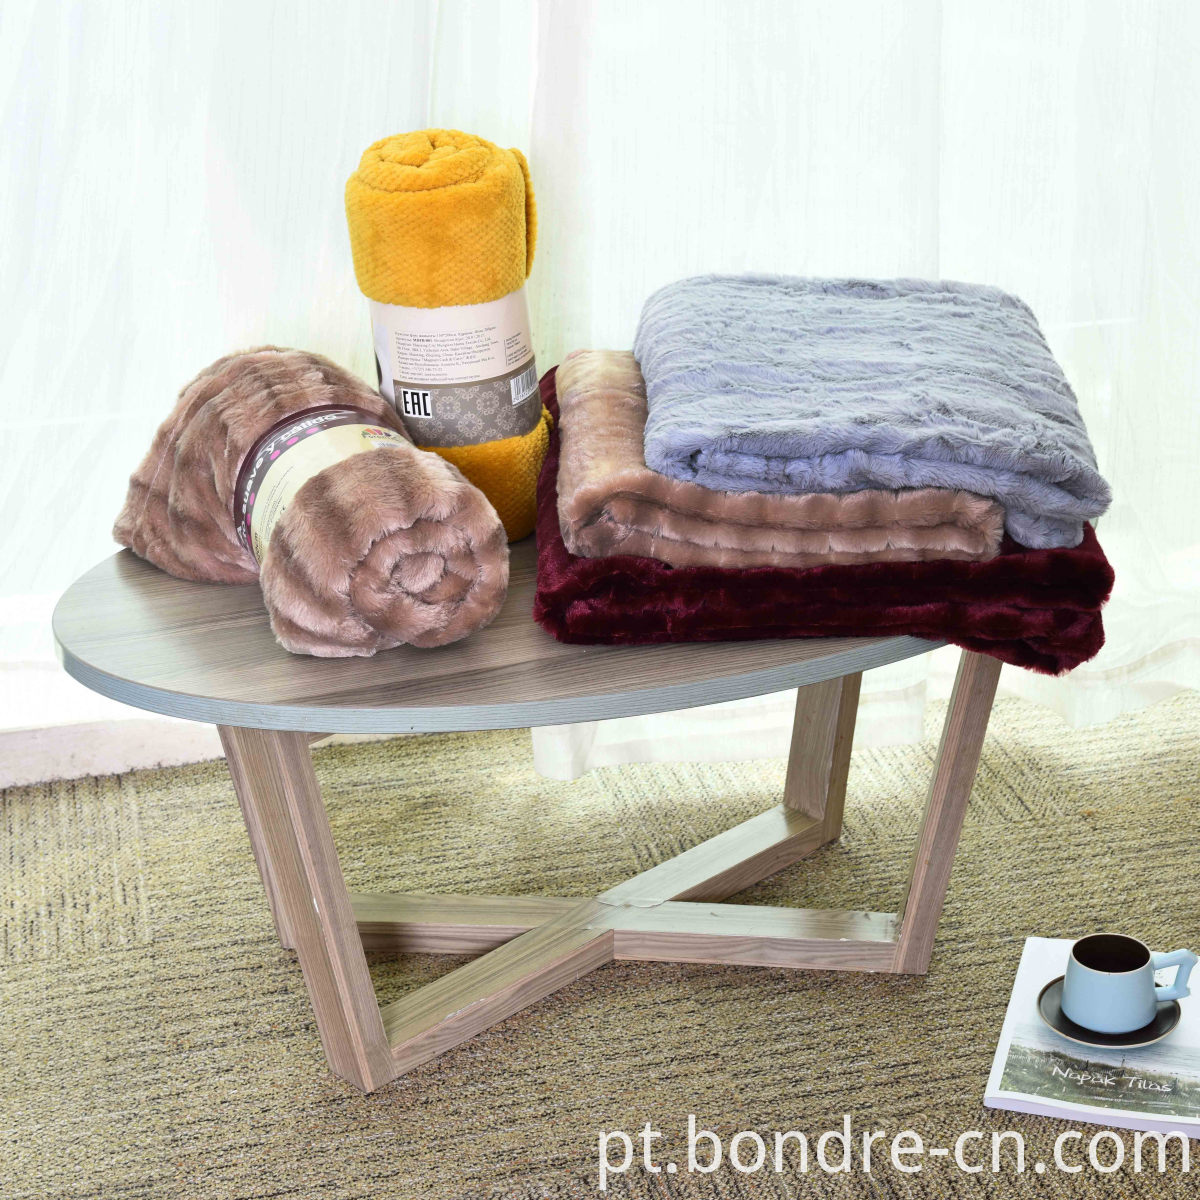 PV fleece double layers blanket (6)